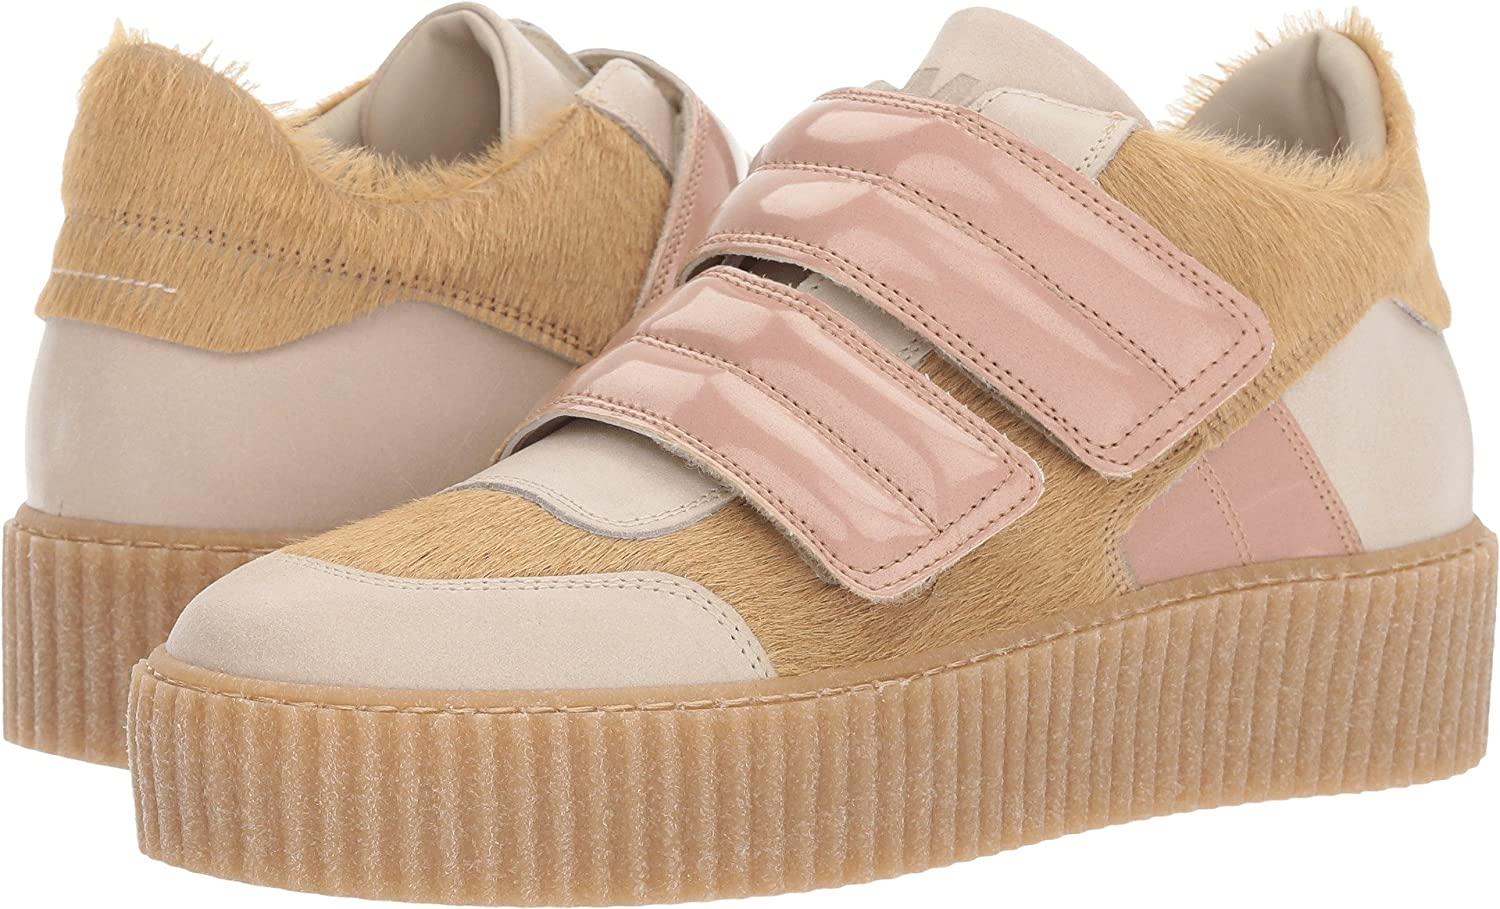 MAISON MARGIELA MM6 Womens Mixed Material Creeper Low Top